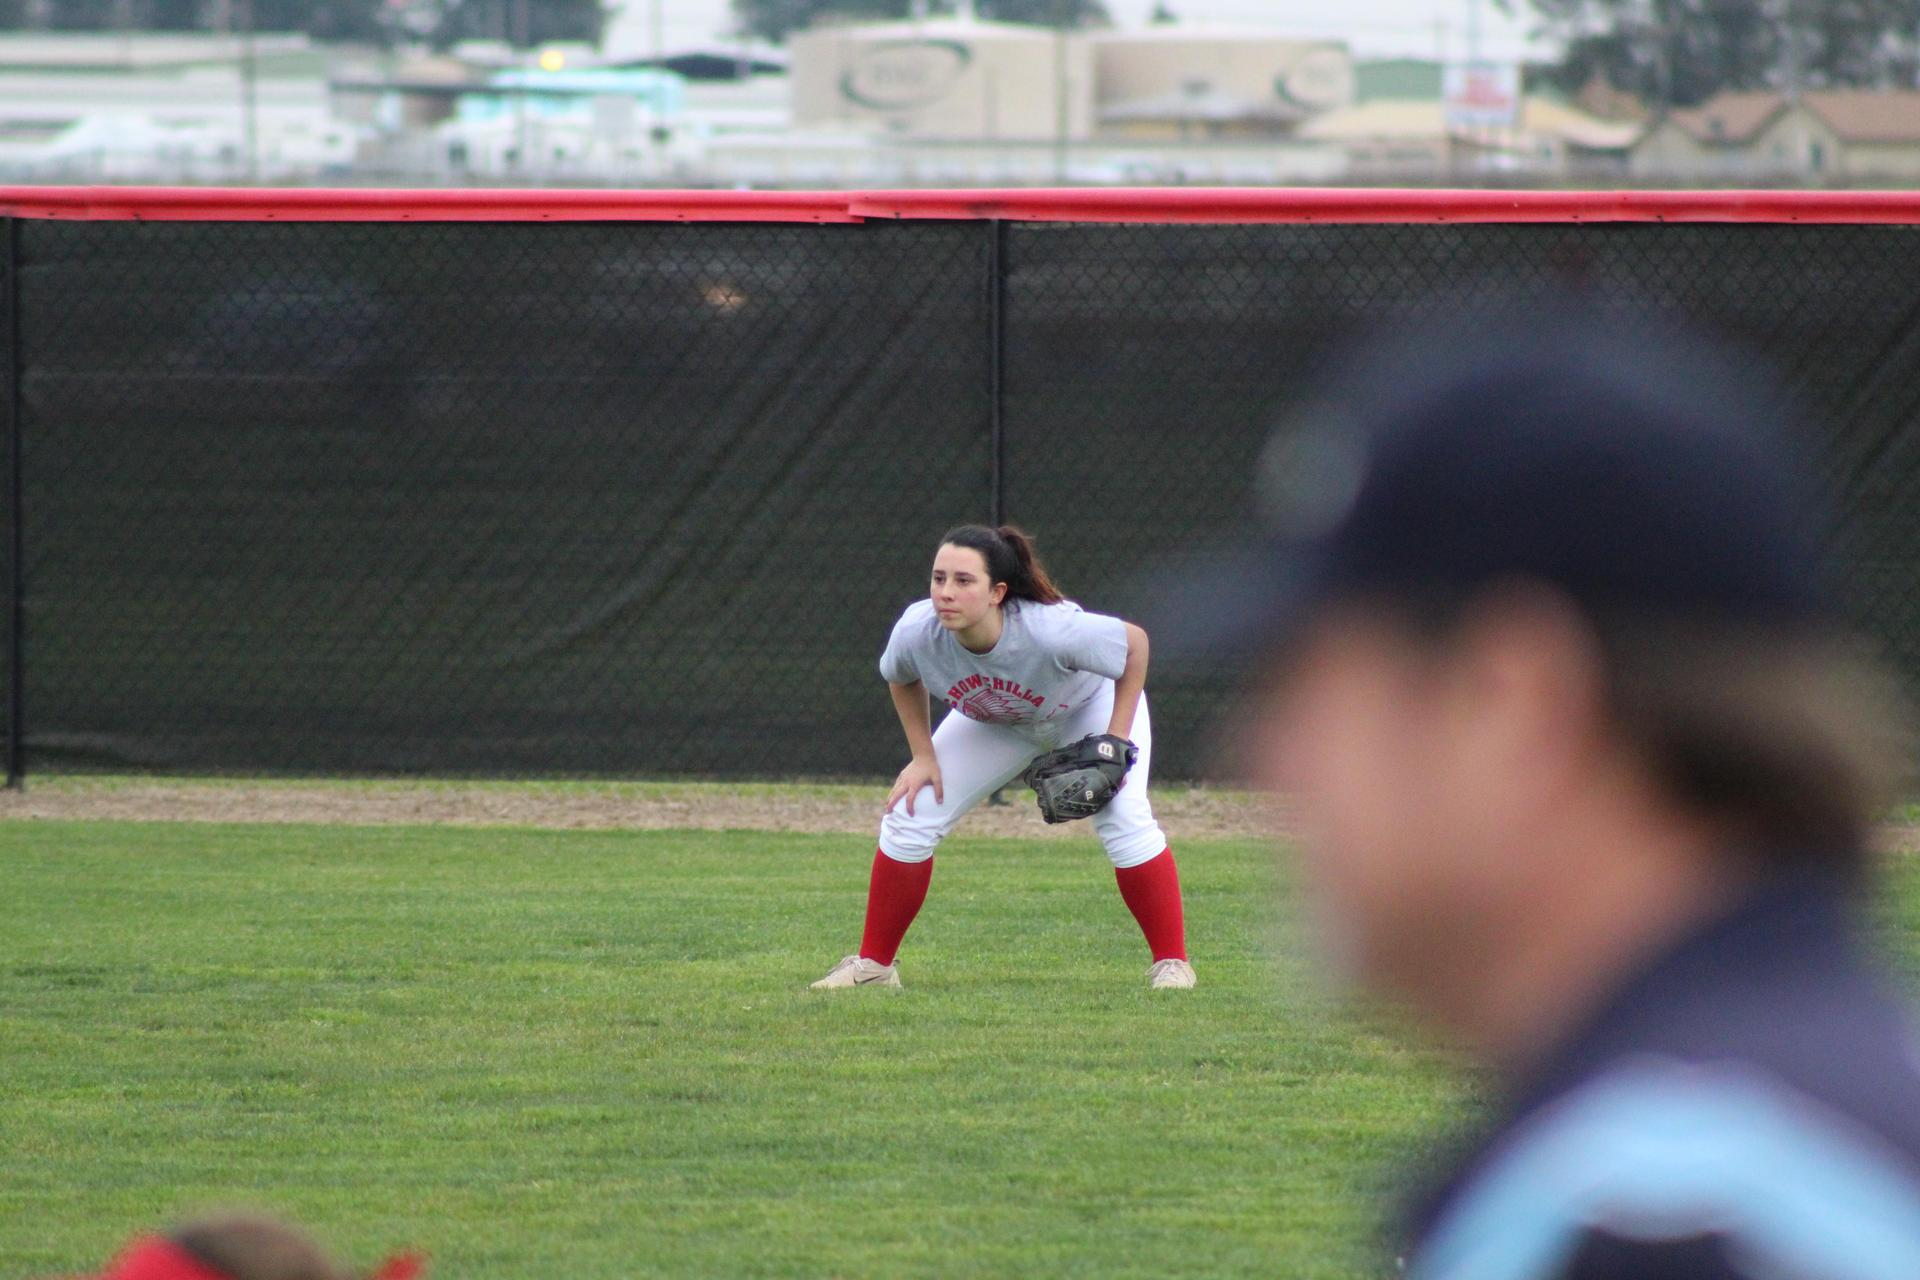 Chowchilla high girls playing softball against Sierra Pacific